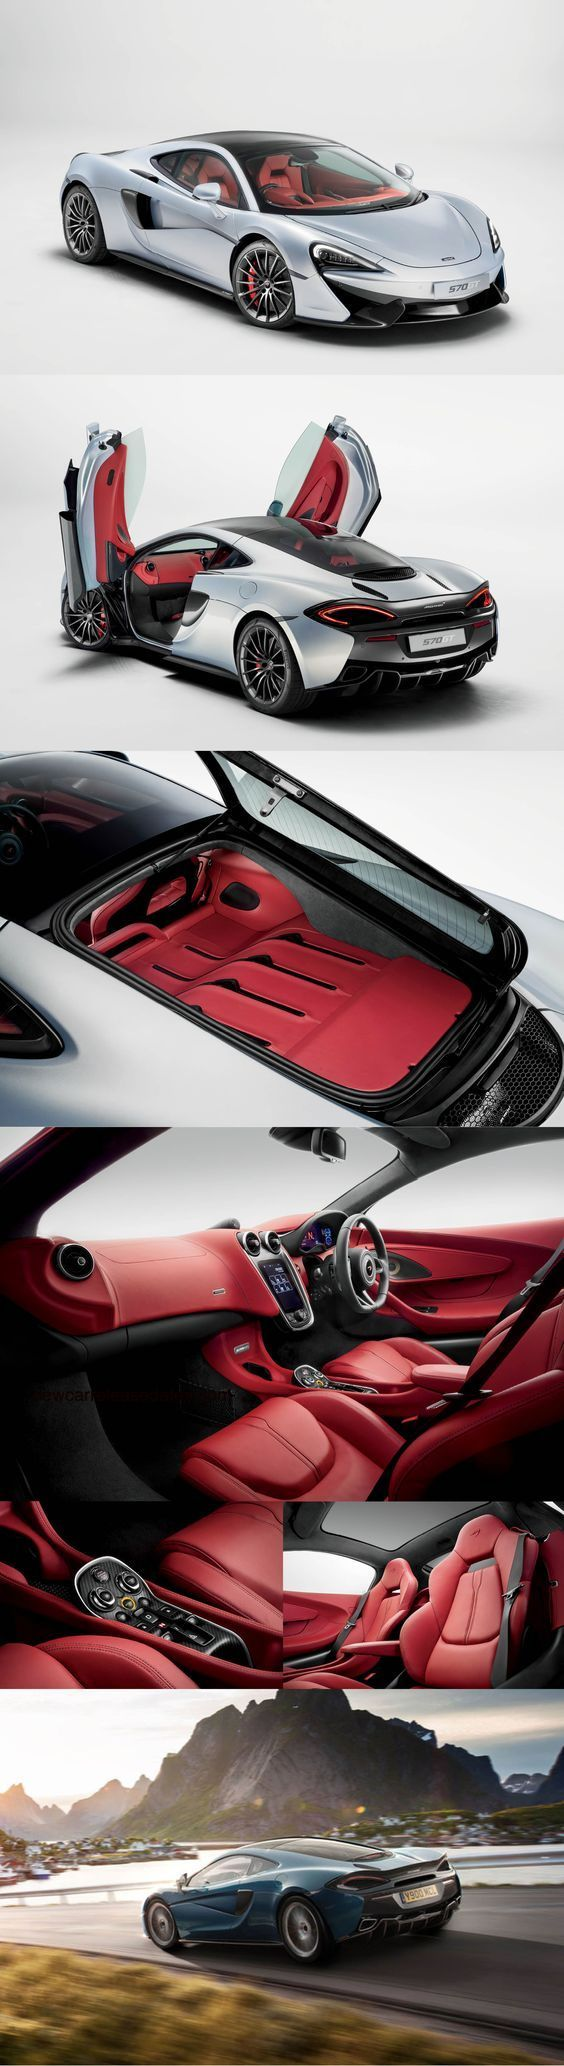 """MUST SEE """" 2017 McLaren 570GT"""", 2017 Concept Car Photos and Images, 2017 Cars https://www.amazon.co.uk/Baby-Car-Mirror-Shatterproof-Installation/dp/B06XHG6SSY/ref=sr_1_2?ie=UTF8&qid=1499074433&sr=8-2&keywords=Kingseye"""